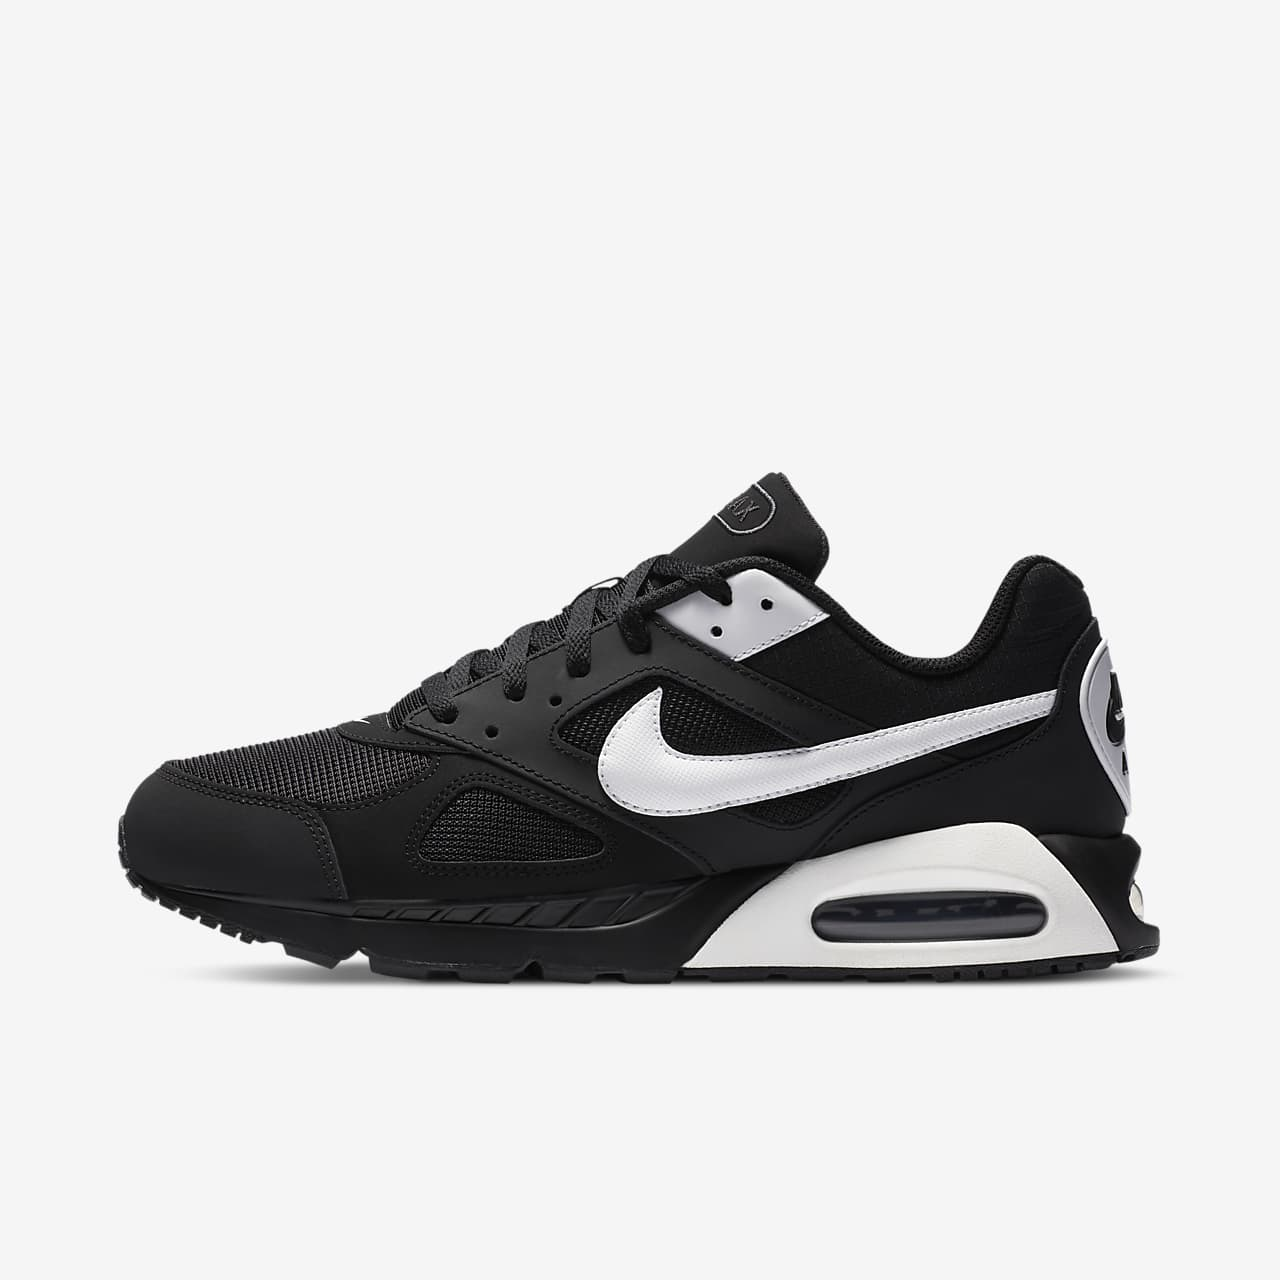 competitive price 74d97 a1aee ... Chaussure Nike Air Max IVO pour Homme